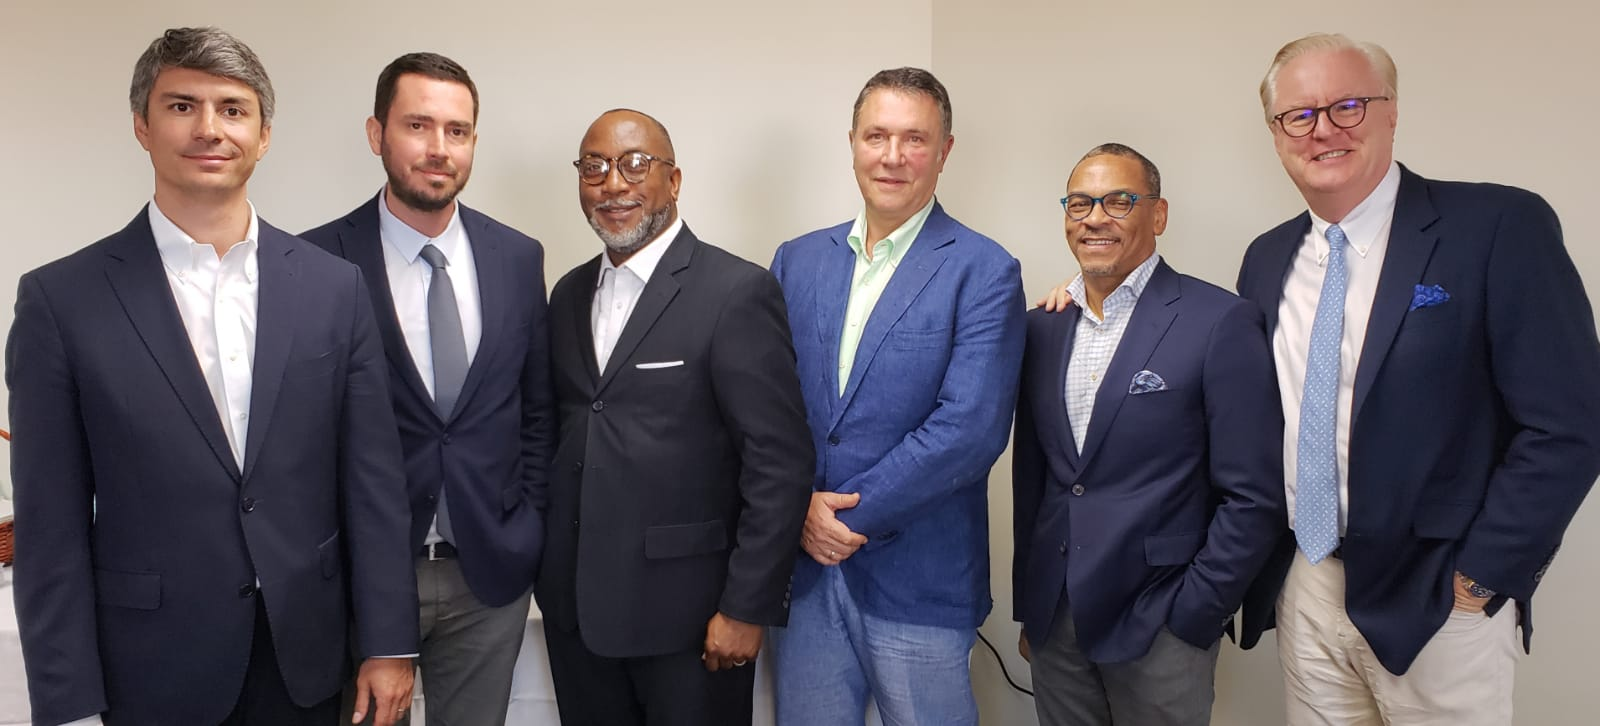 (From Left to Right) ,  Mr.   Caner Cevdet Akcali -  VP, Strategy and M&A  , Mr. Ali Kosklu -  Counsel & Office of the Chairman at Global Investment Holdings,  Mr.   Tasman Darling  - Managing Partner at Blue Orchid Advertising,  Mr. Mehmet Kutman  - Chairman at Global Investments Holdings,  Mr. Anthony Ferguson  - President and Founder at CFAL ,  Mr.   Colin Murphy  - Head of Business Development, The Americas